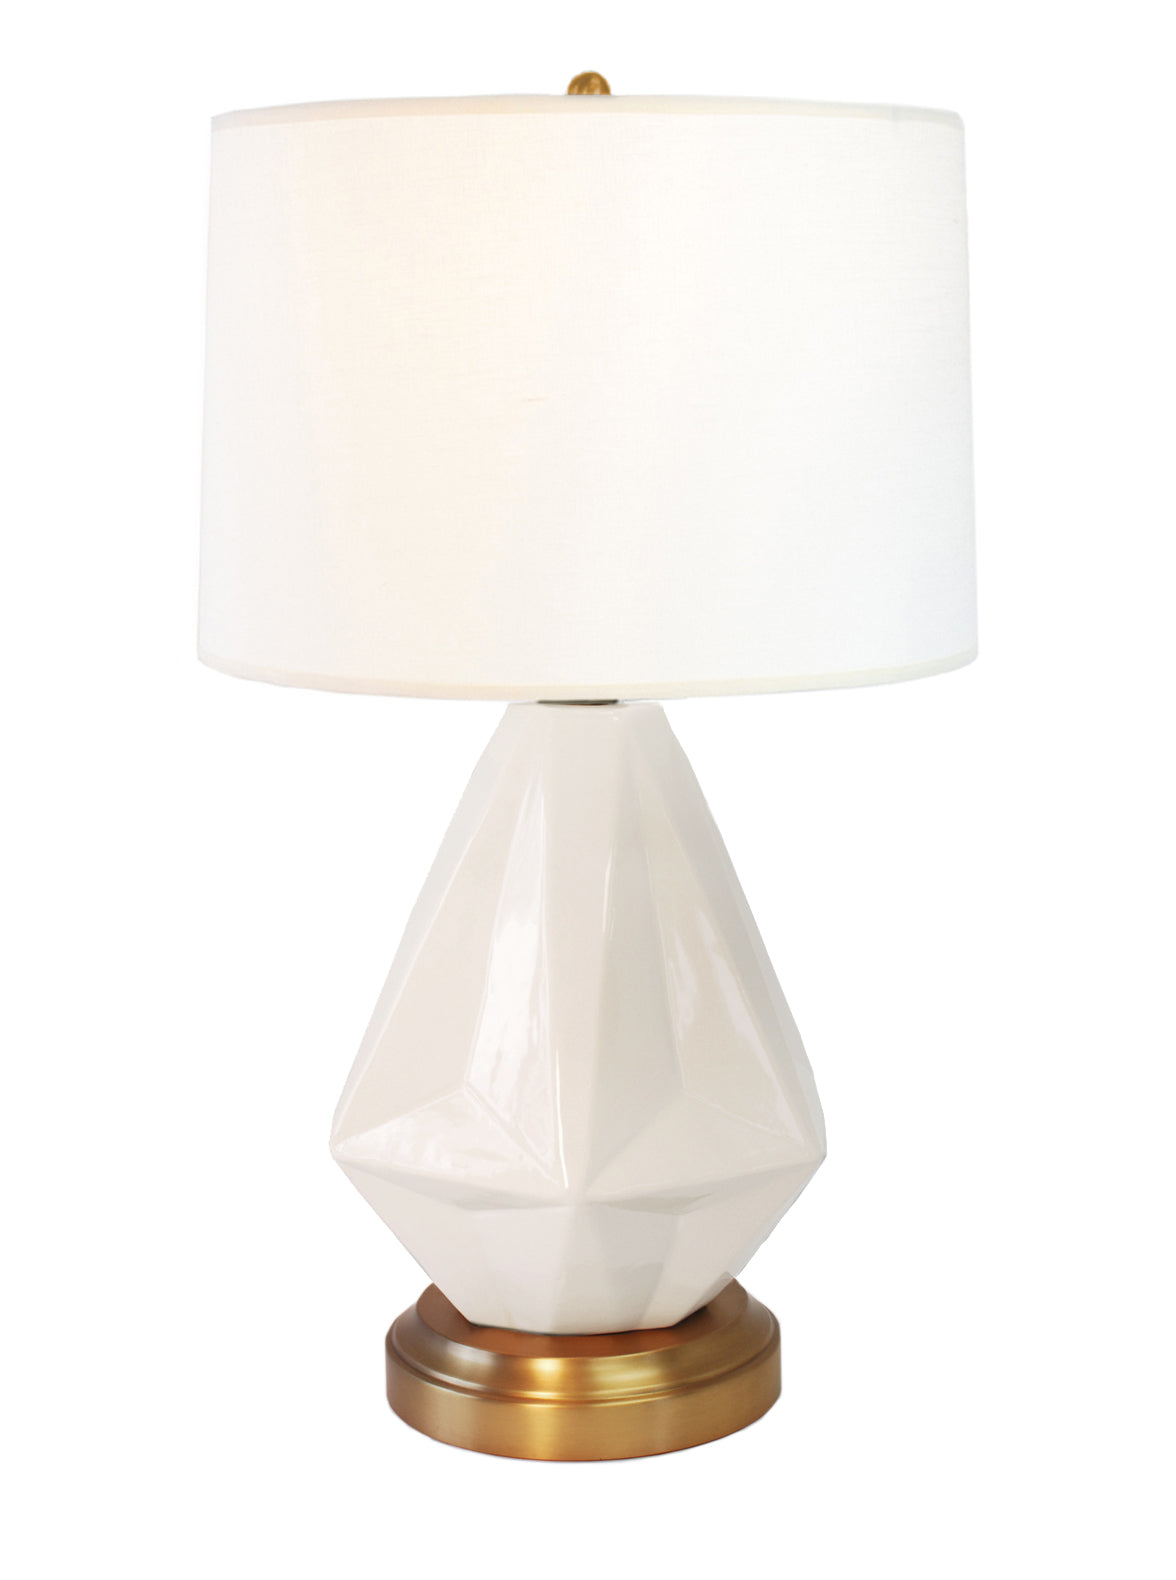 Delicieux Prisma White On Brass Cordless Table Lamp Battery Operated By Modern Lantern